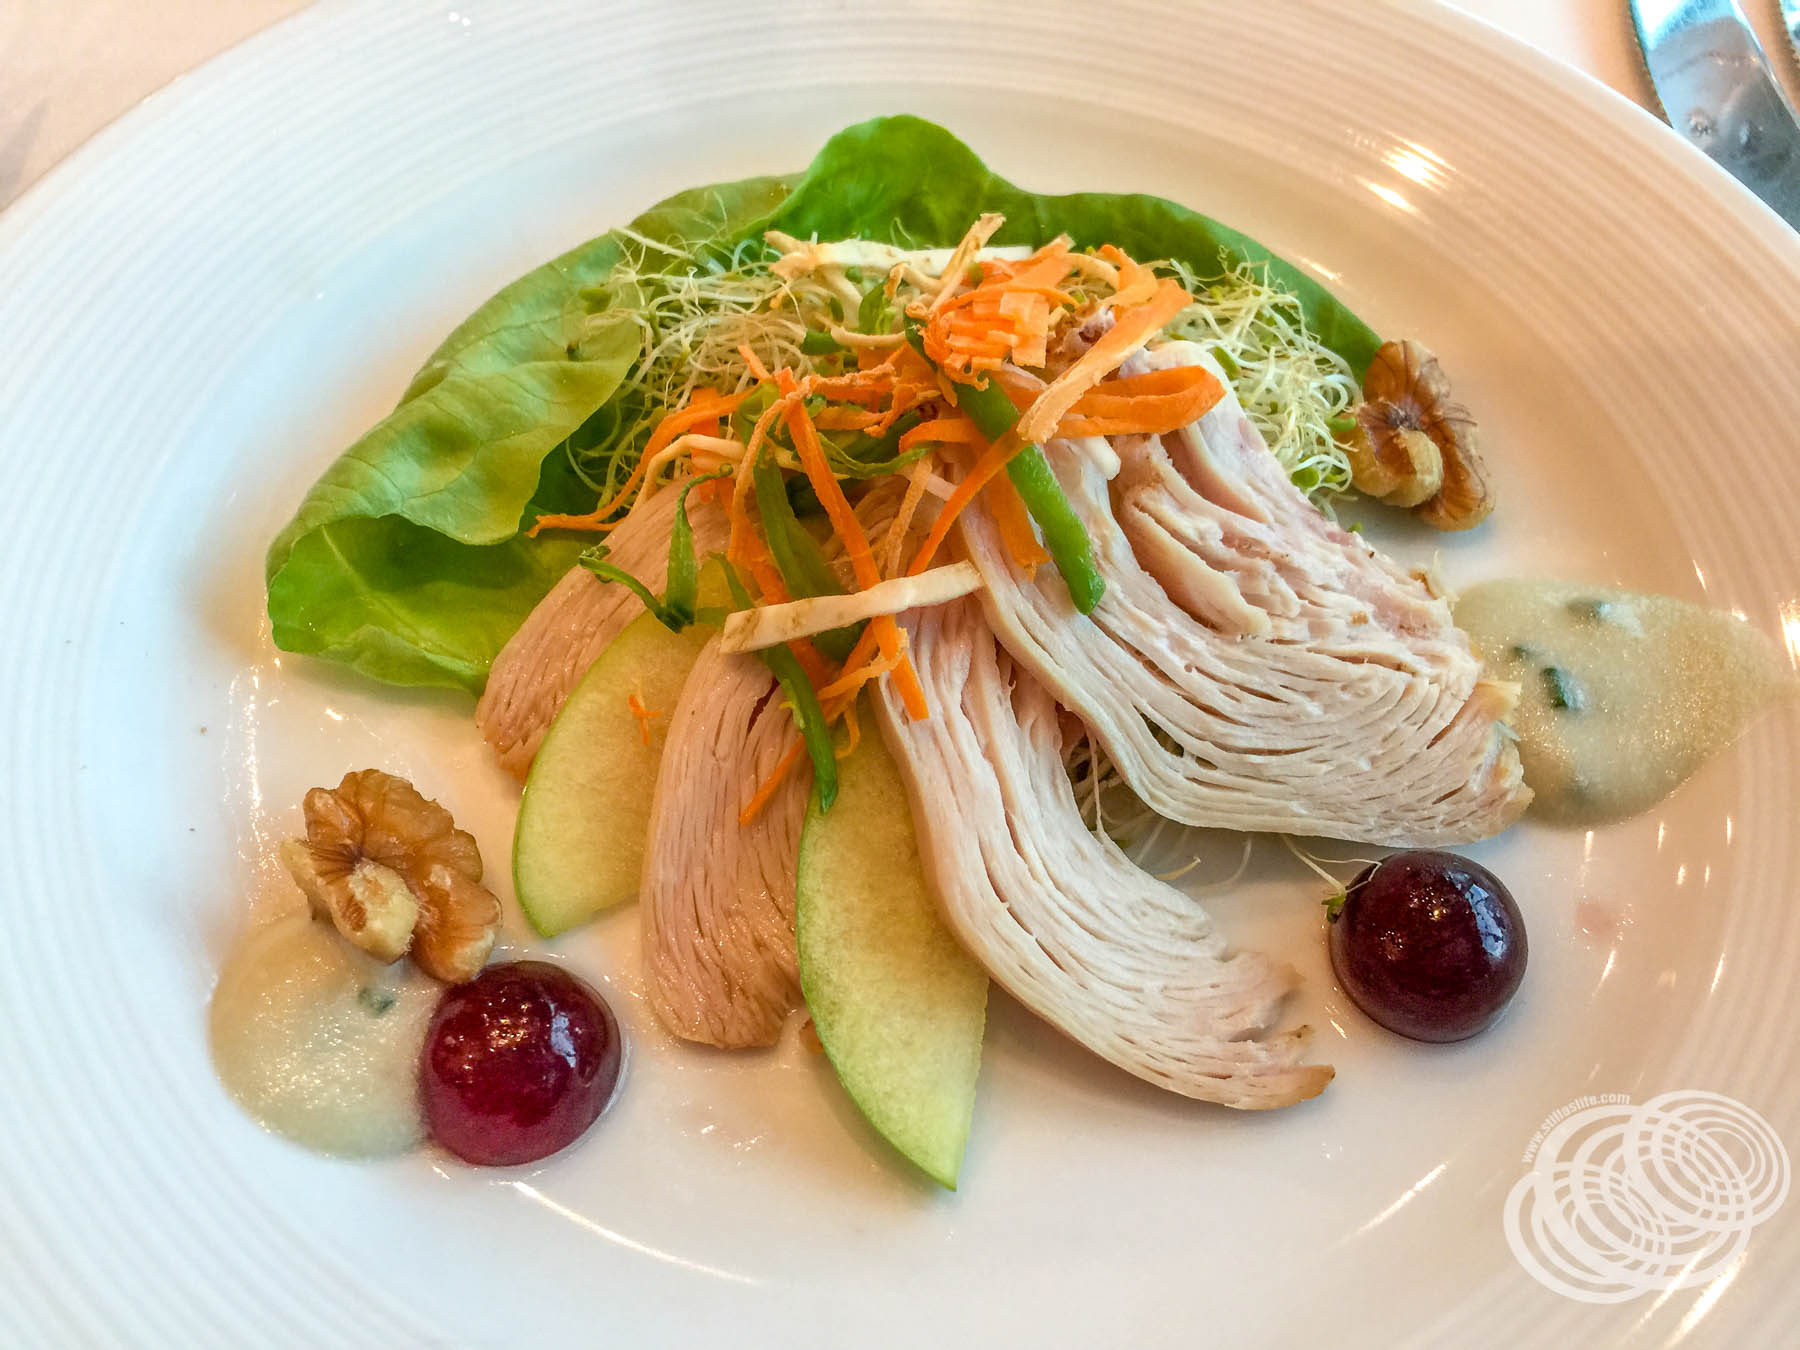 Royal Caribbean Saffron Menu - Oakwood Smoked Chicken Breast